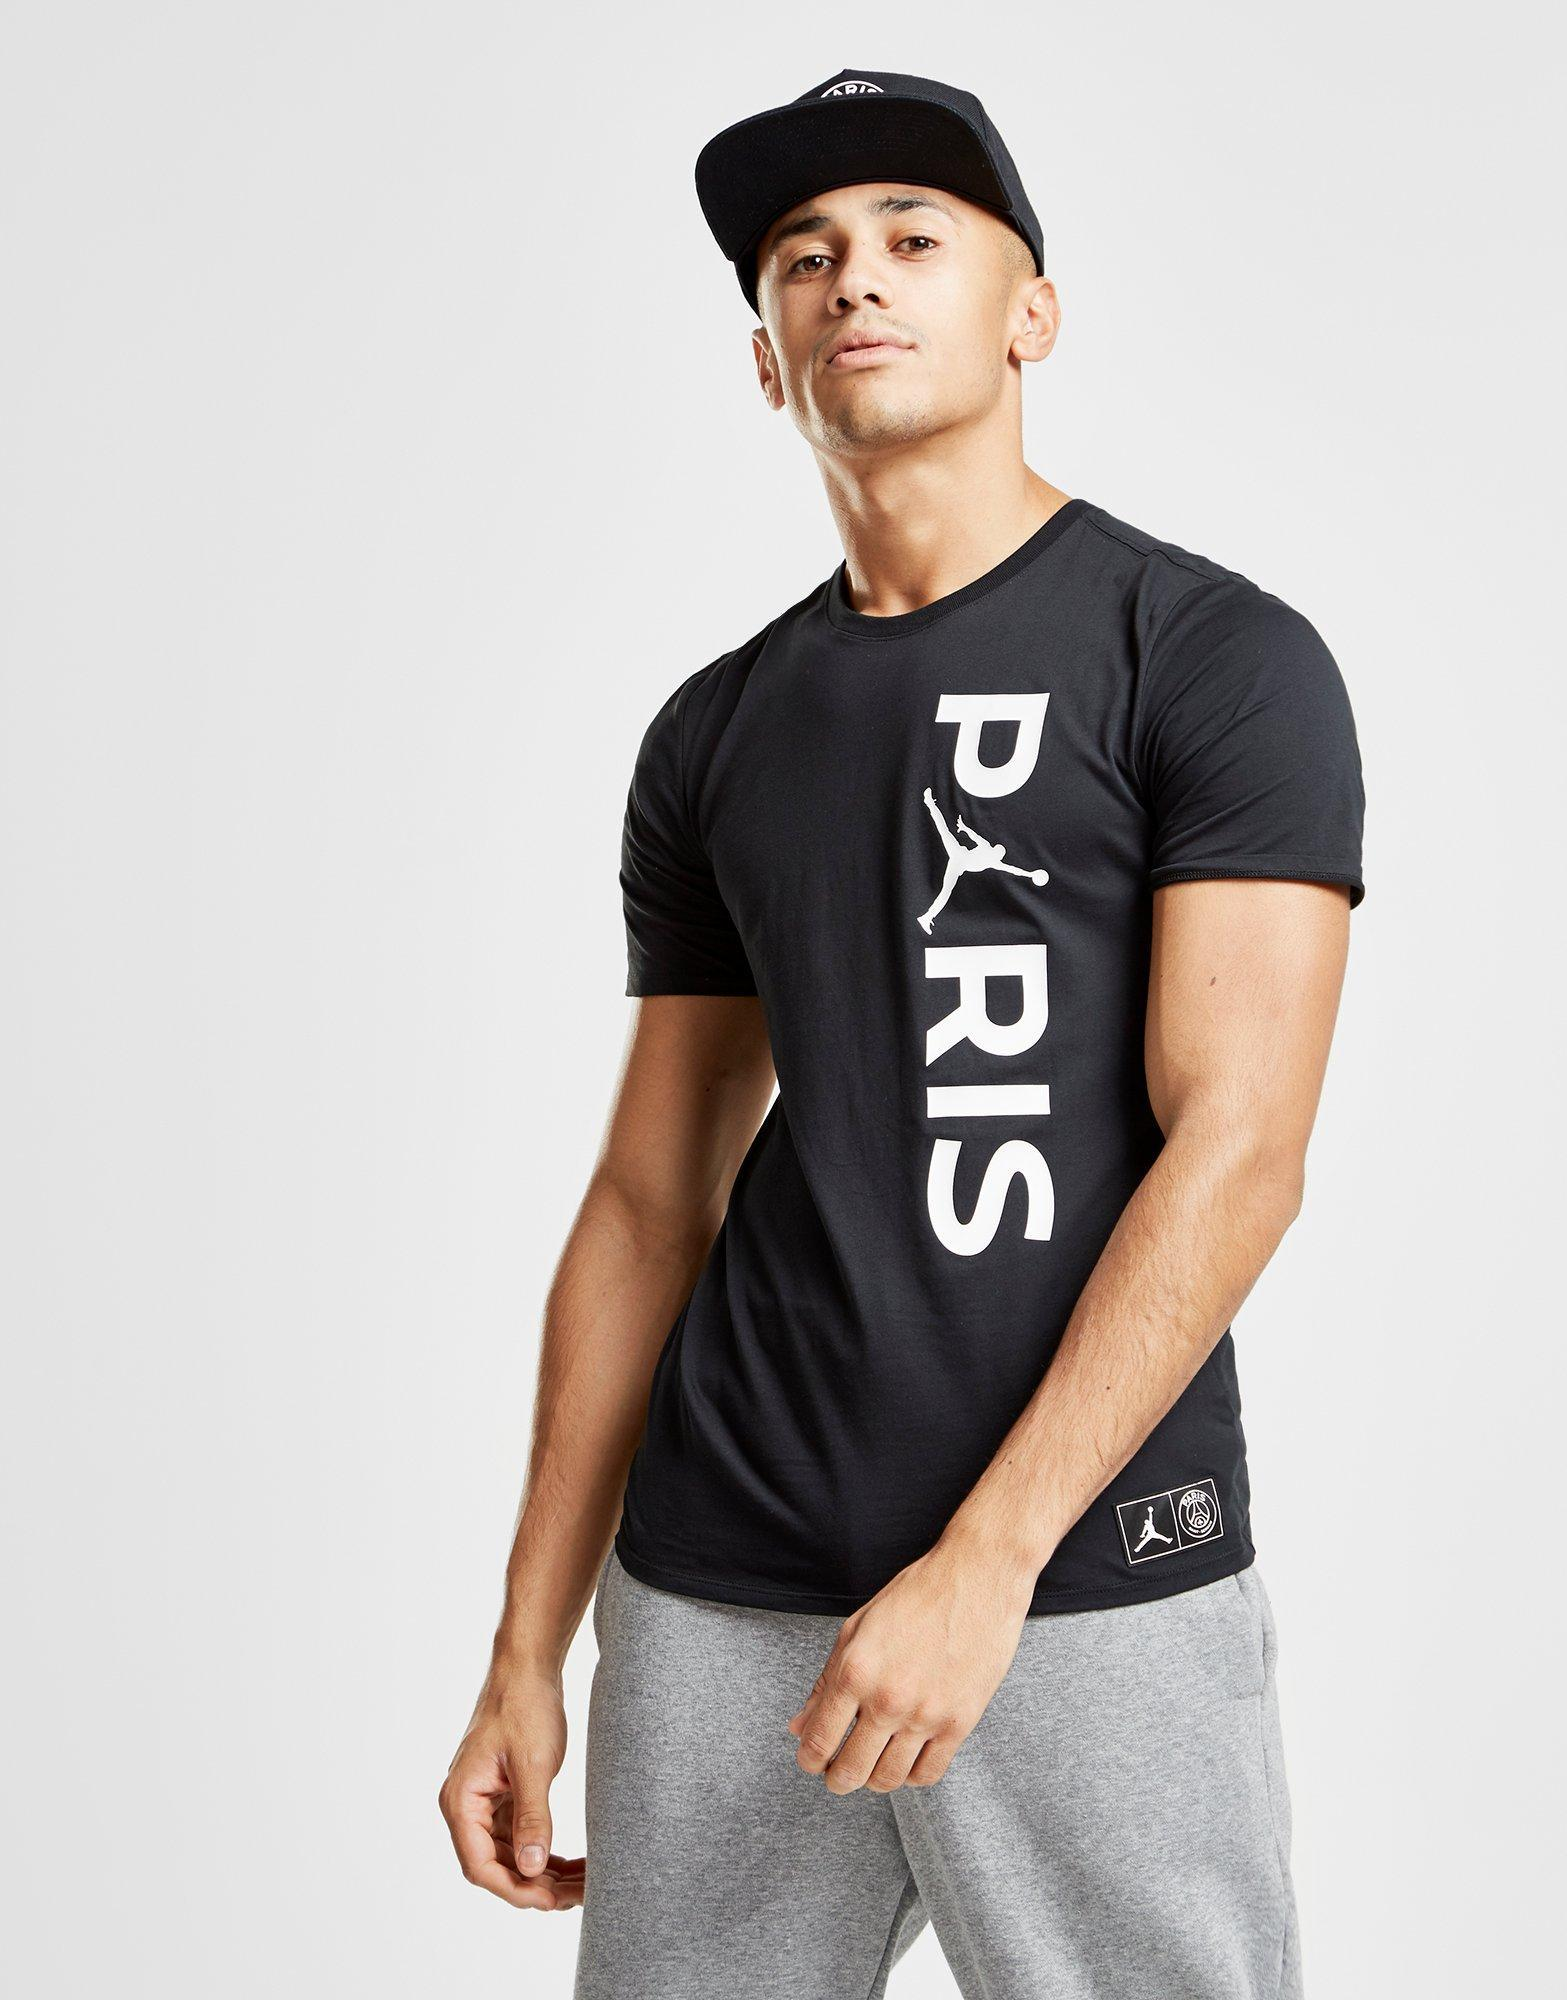 f6c10286877 Nike X Paris Saint Germain Wordmark T-shirt in Black for Men - Lyst